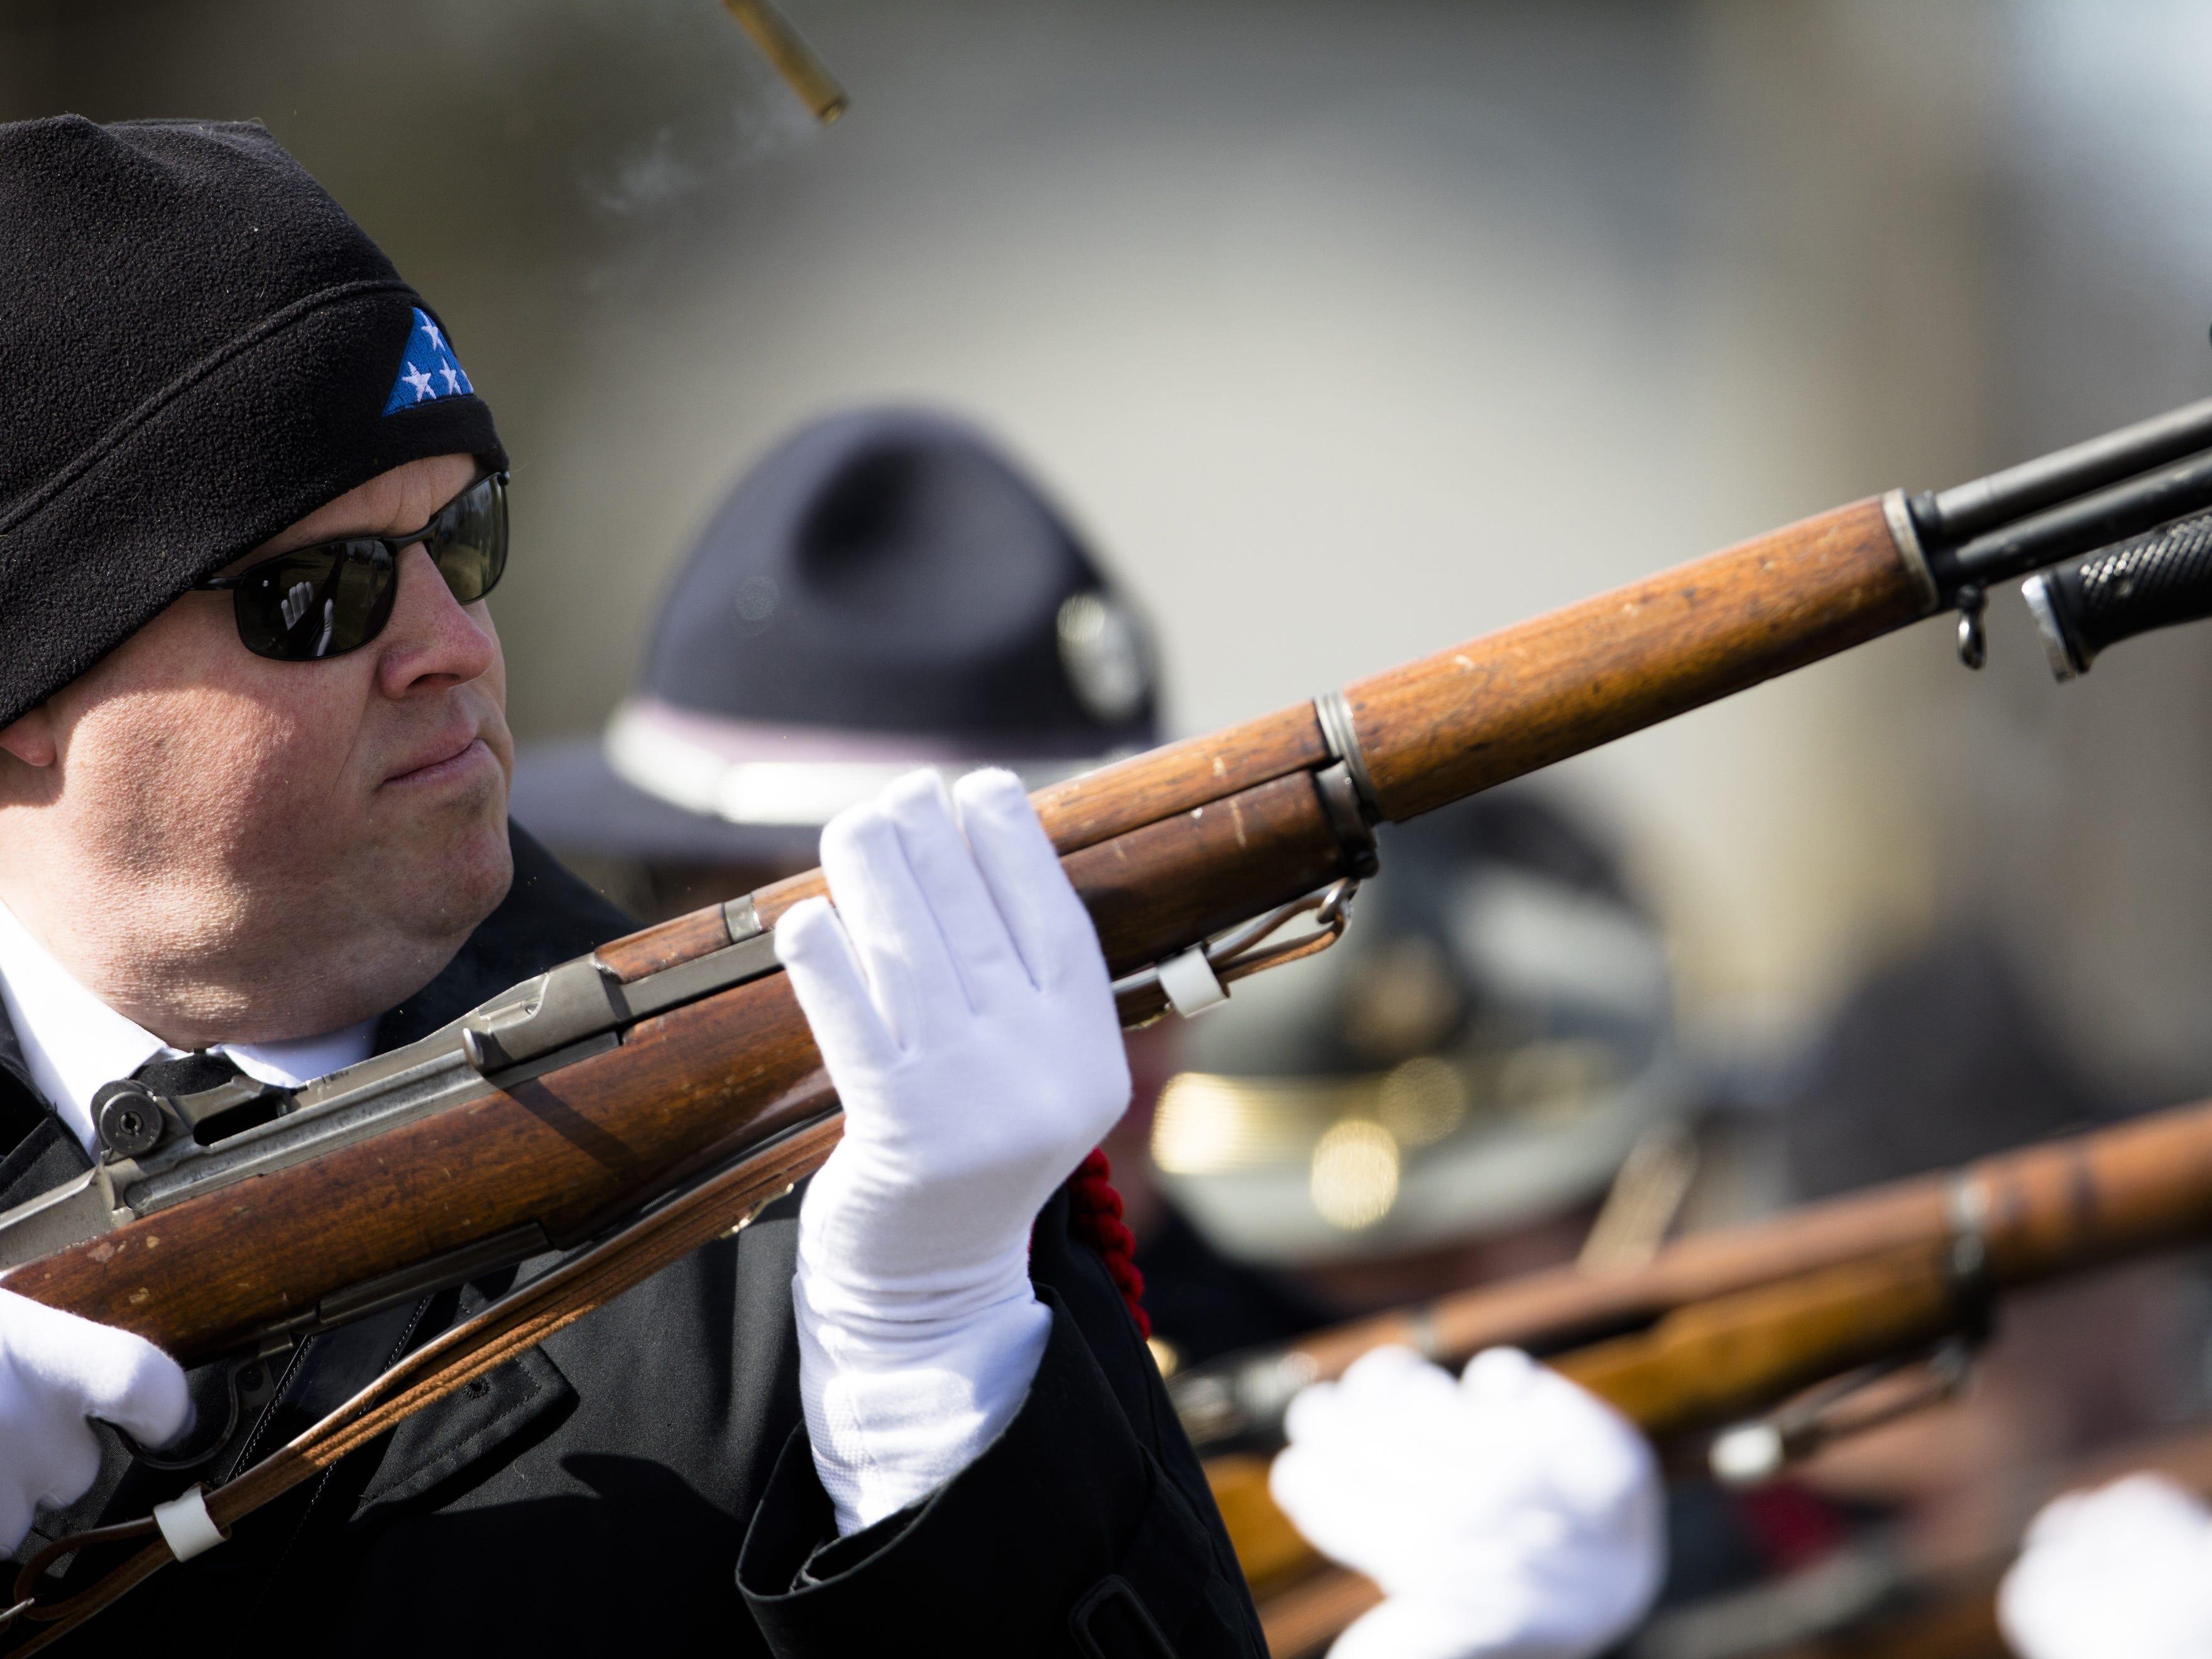 The honor guard team practices firing in unison before the burial service of Detective Bill Brewer, a 20-year veteran of the Clermont County Sheriff's Office, on Friday, Feb. 8, 2019, at Pierce Township Cemetery in Cincinnati. Brewer, 42, of Pierce Township, died in the line of duty. He was shot Feb. 2 during a standoff. Deputy Brewer is survived by a wife and 5-year-old son.